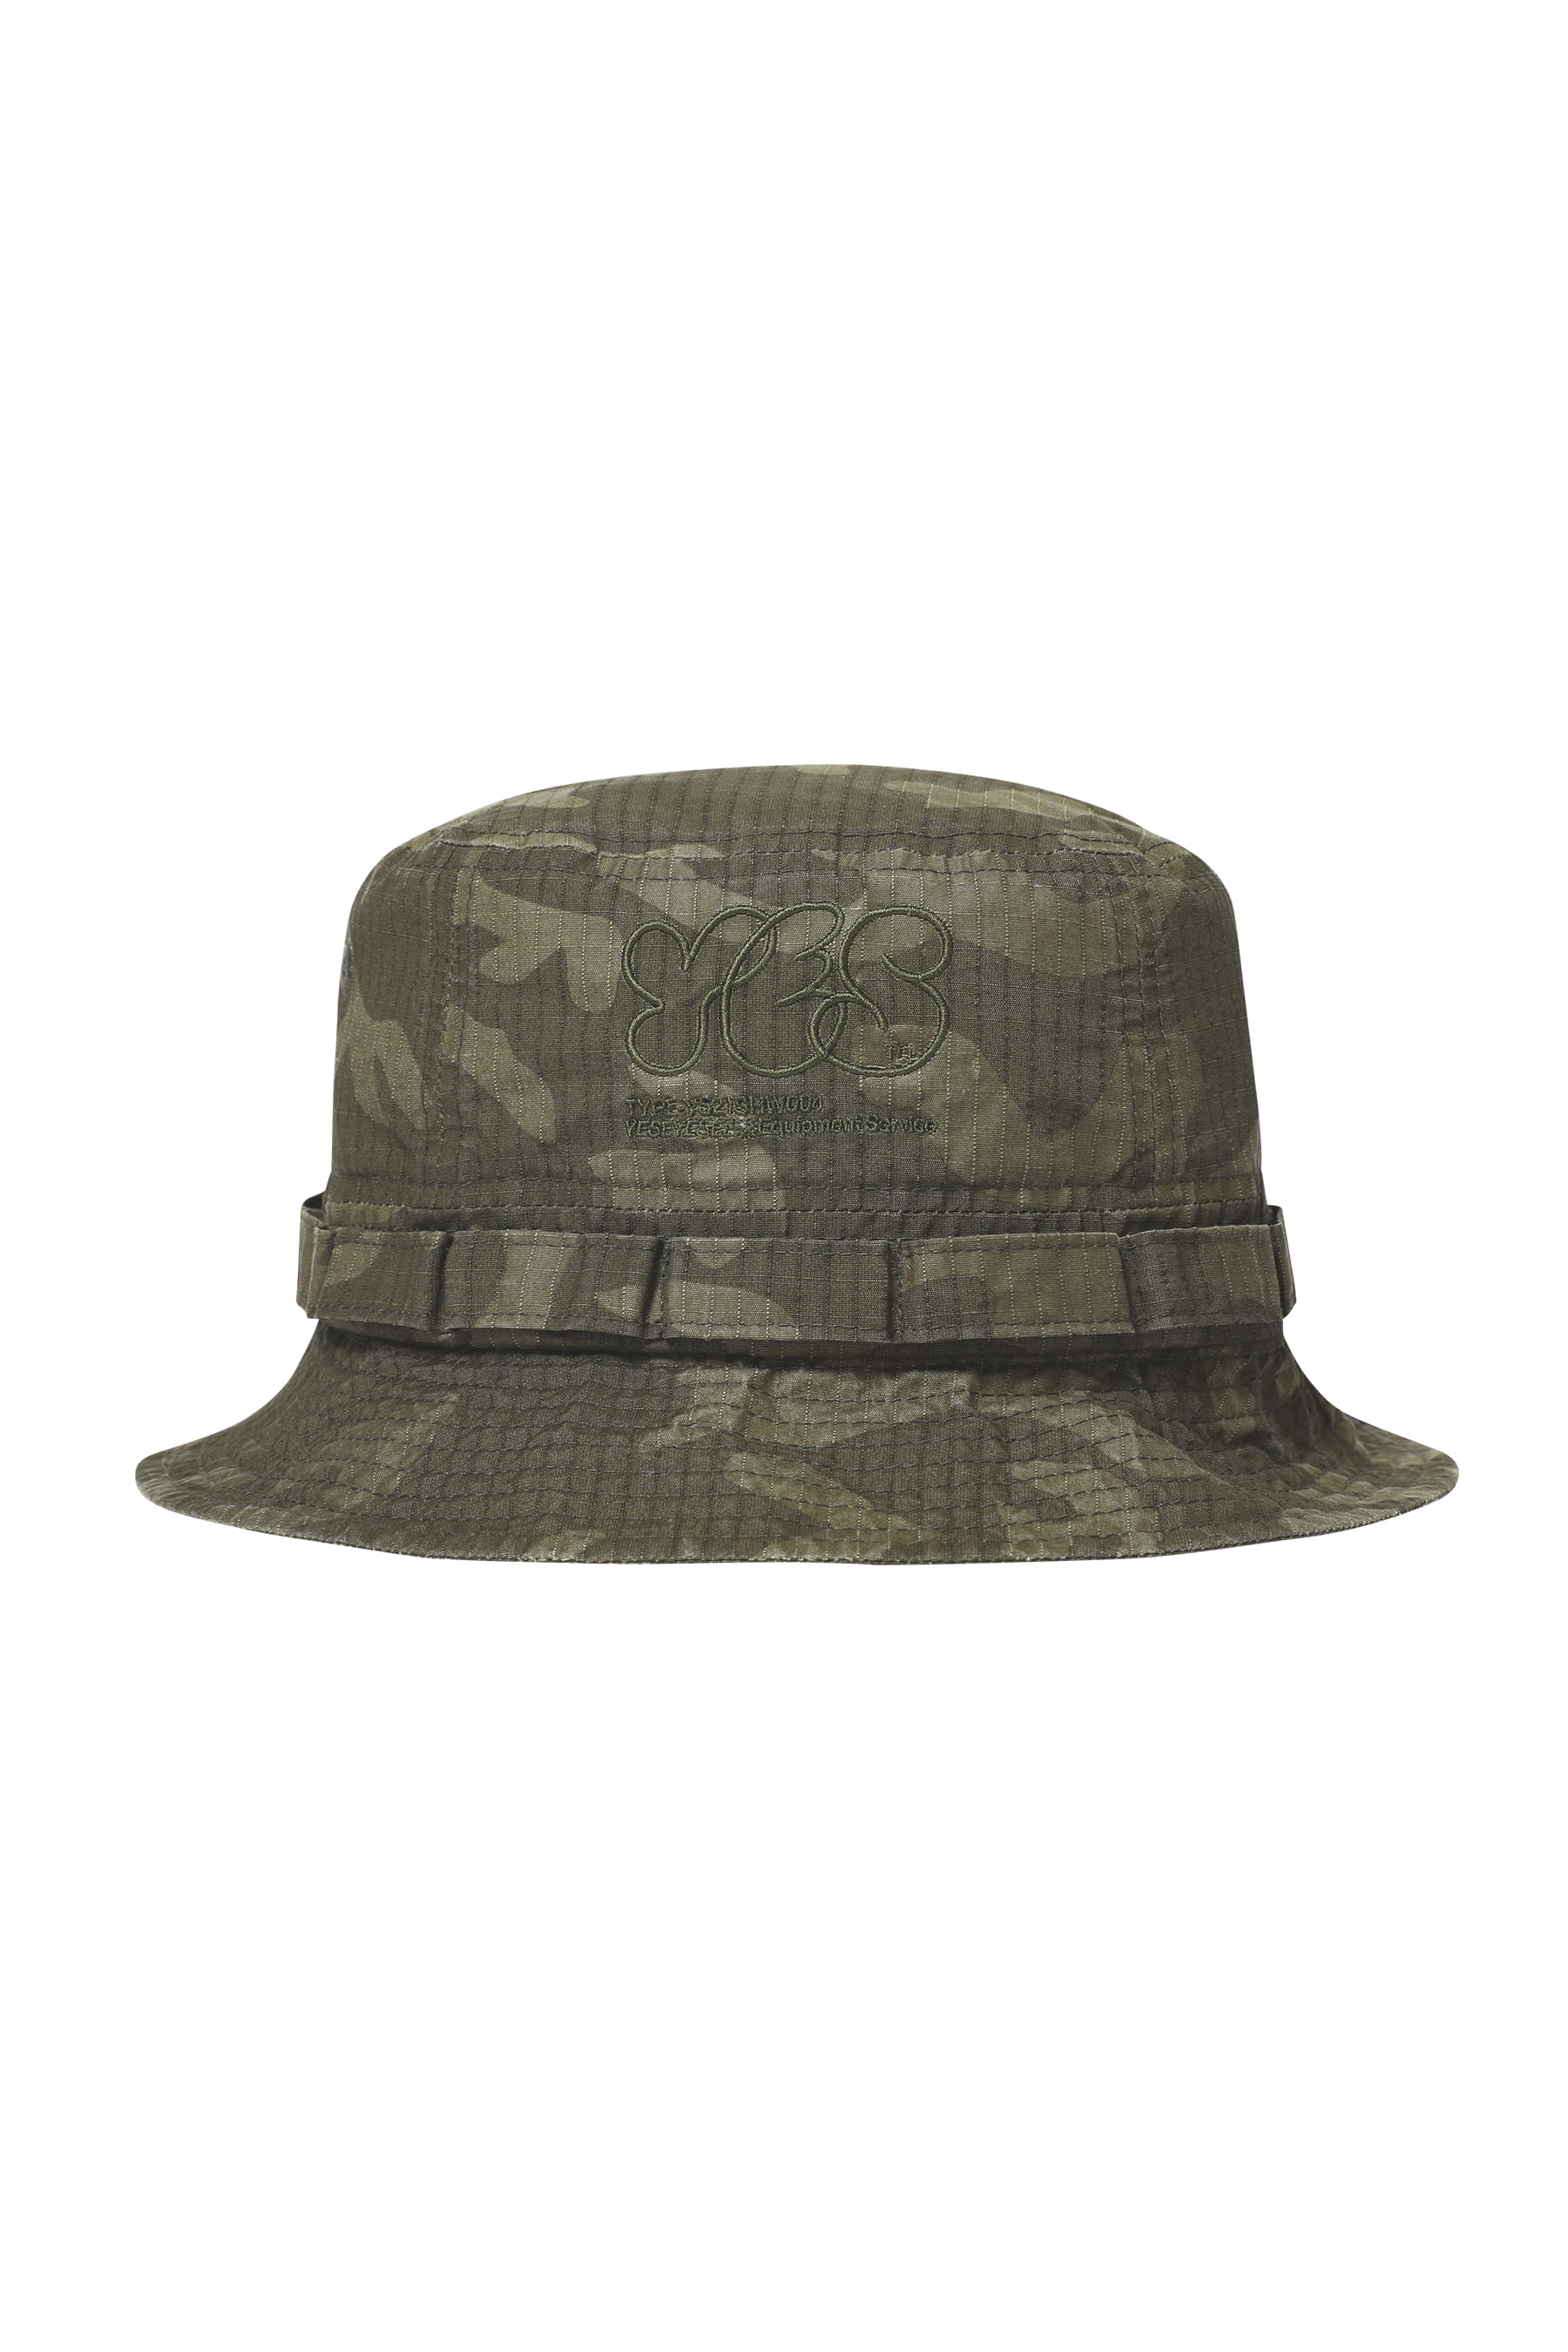 Y.E.S Military Bucket Hat Olive Camo